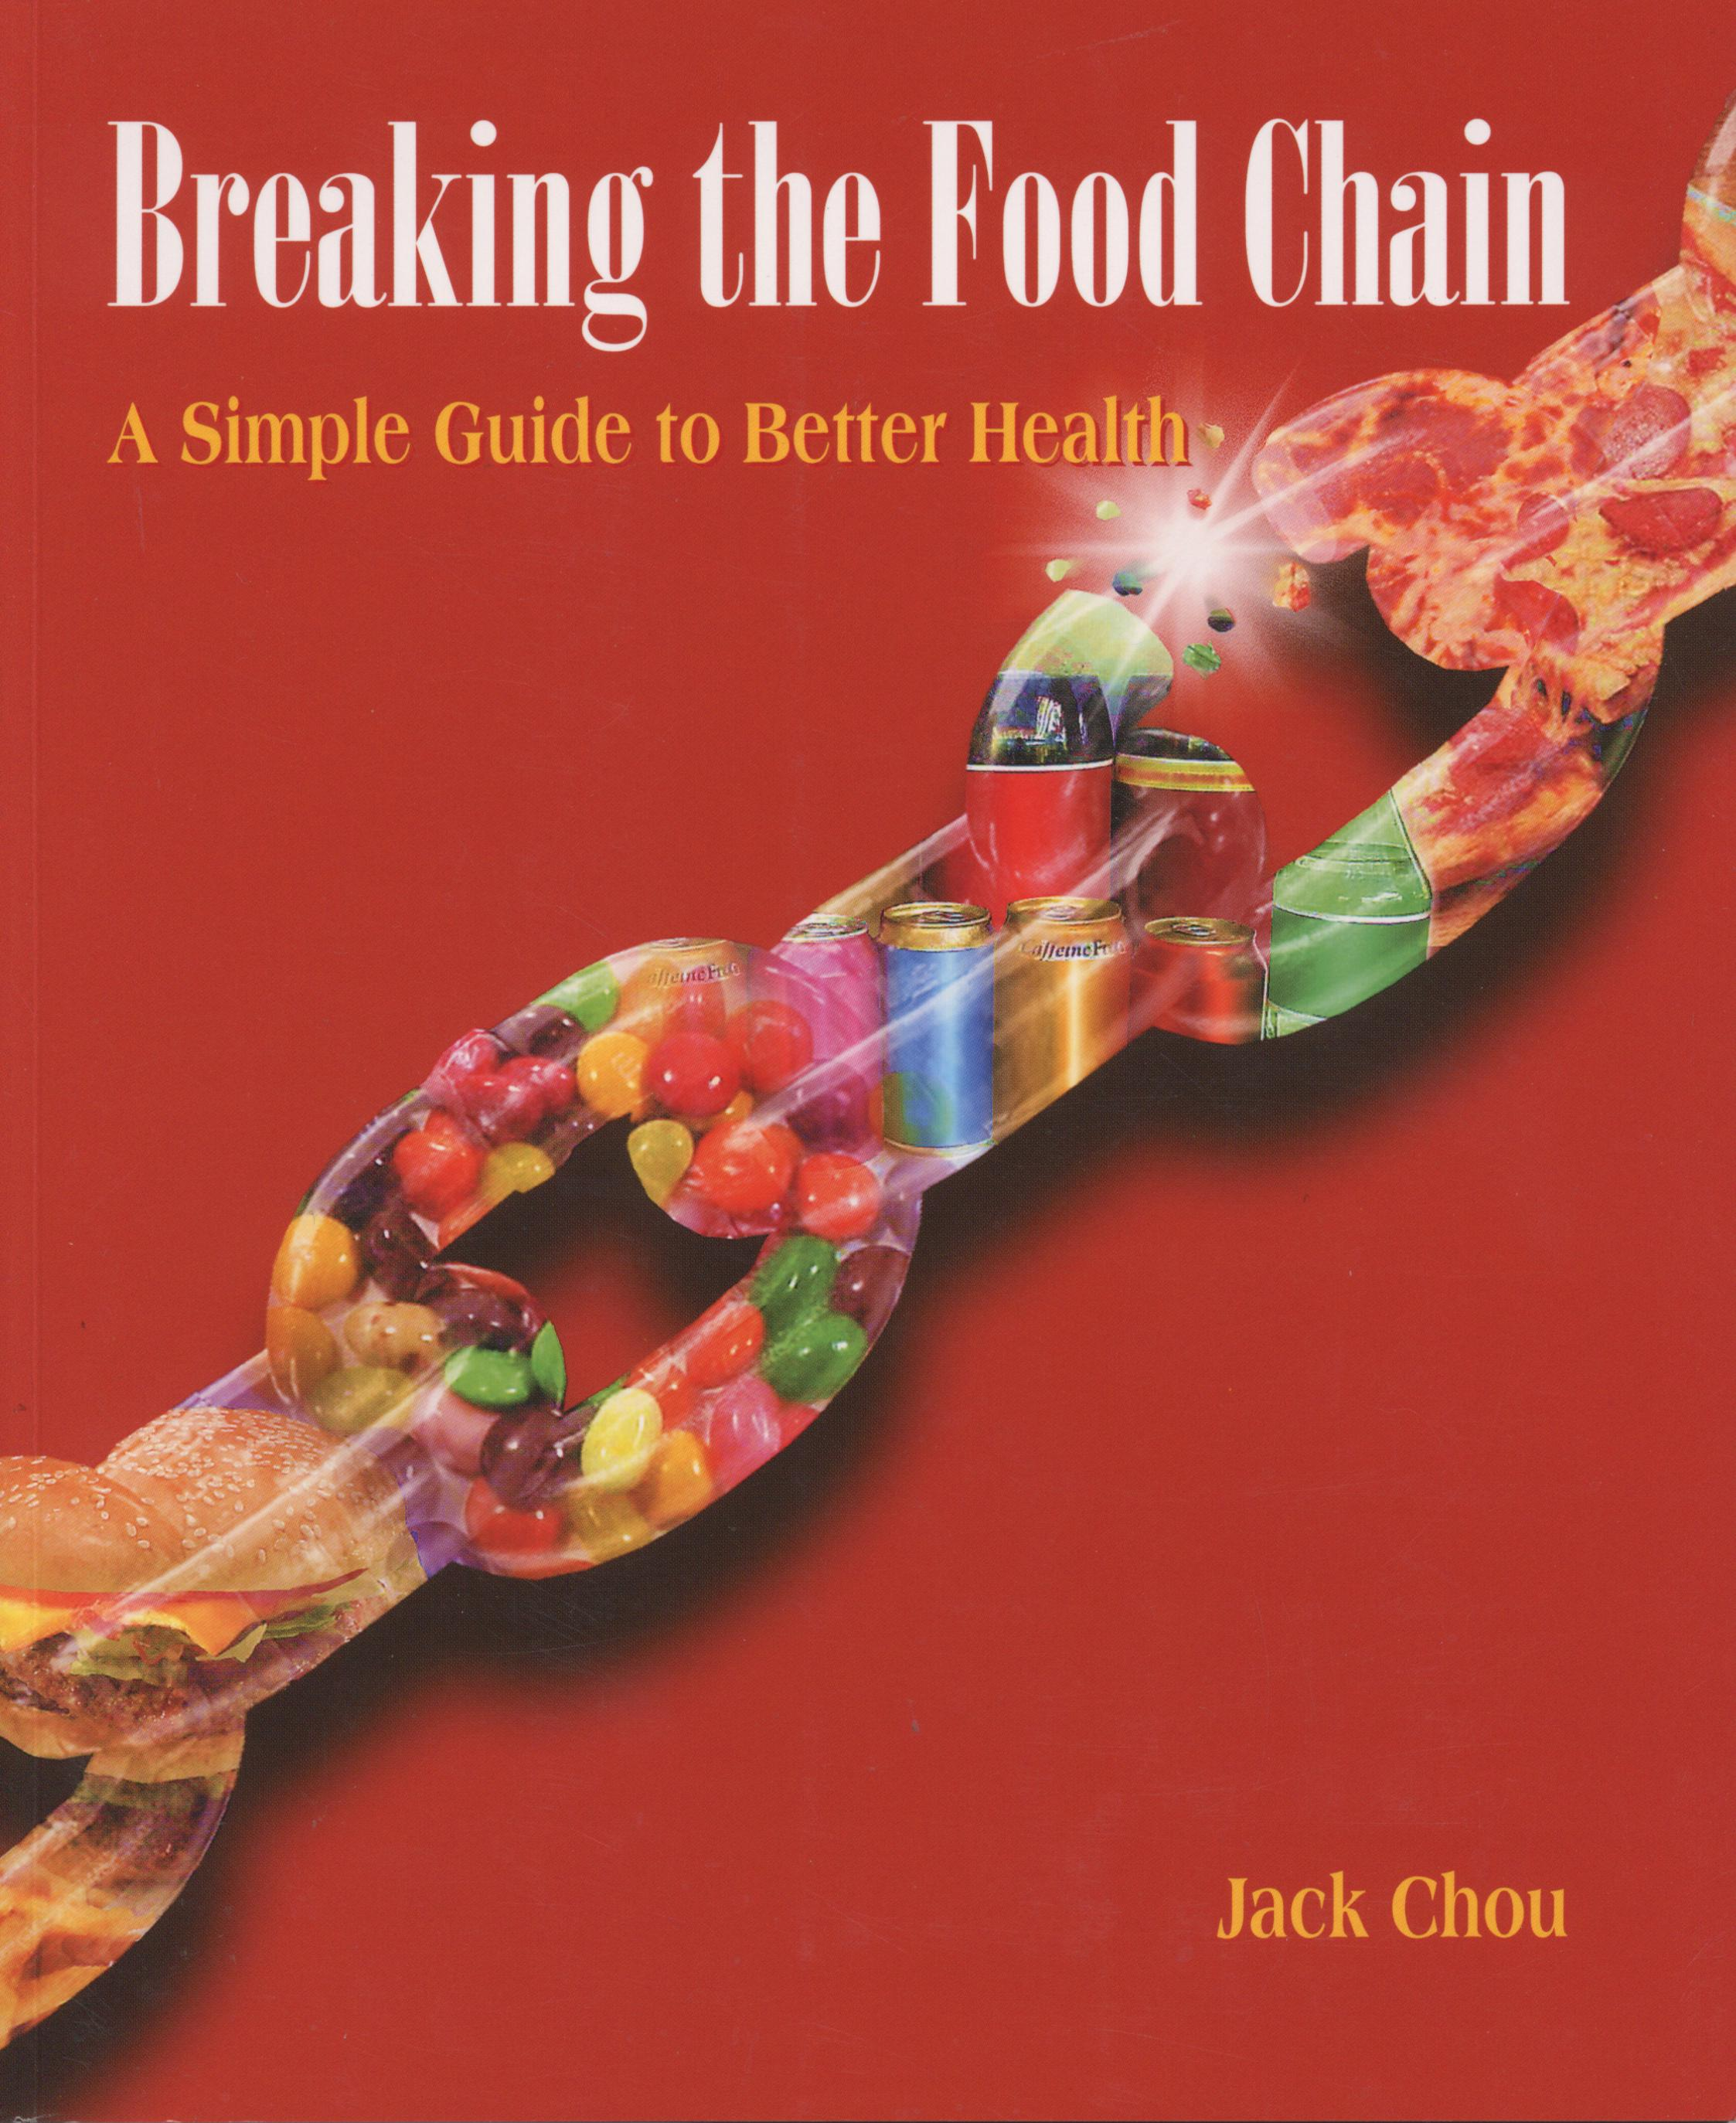 1283. Breaking the Food Chain: A Simple Guide to Better Health/Jack Chou/2002